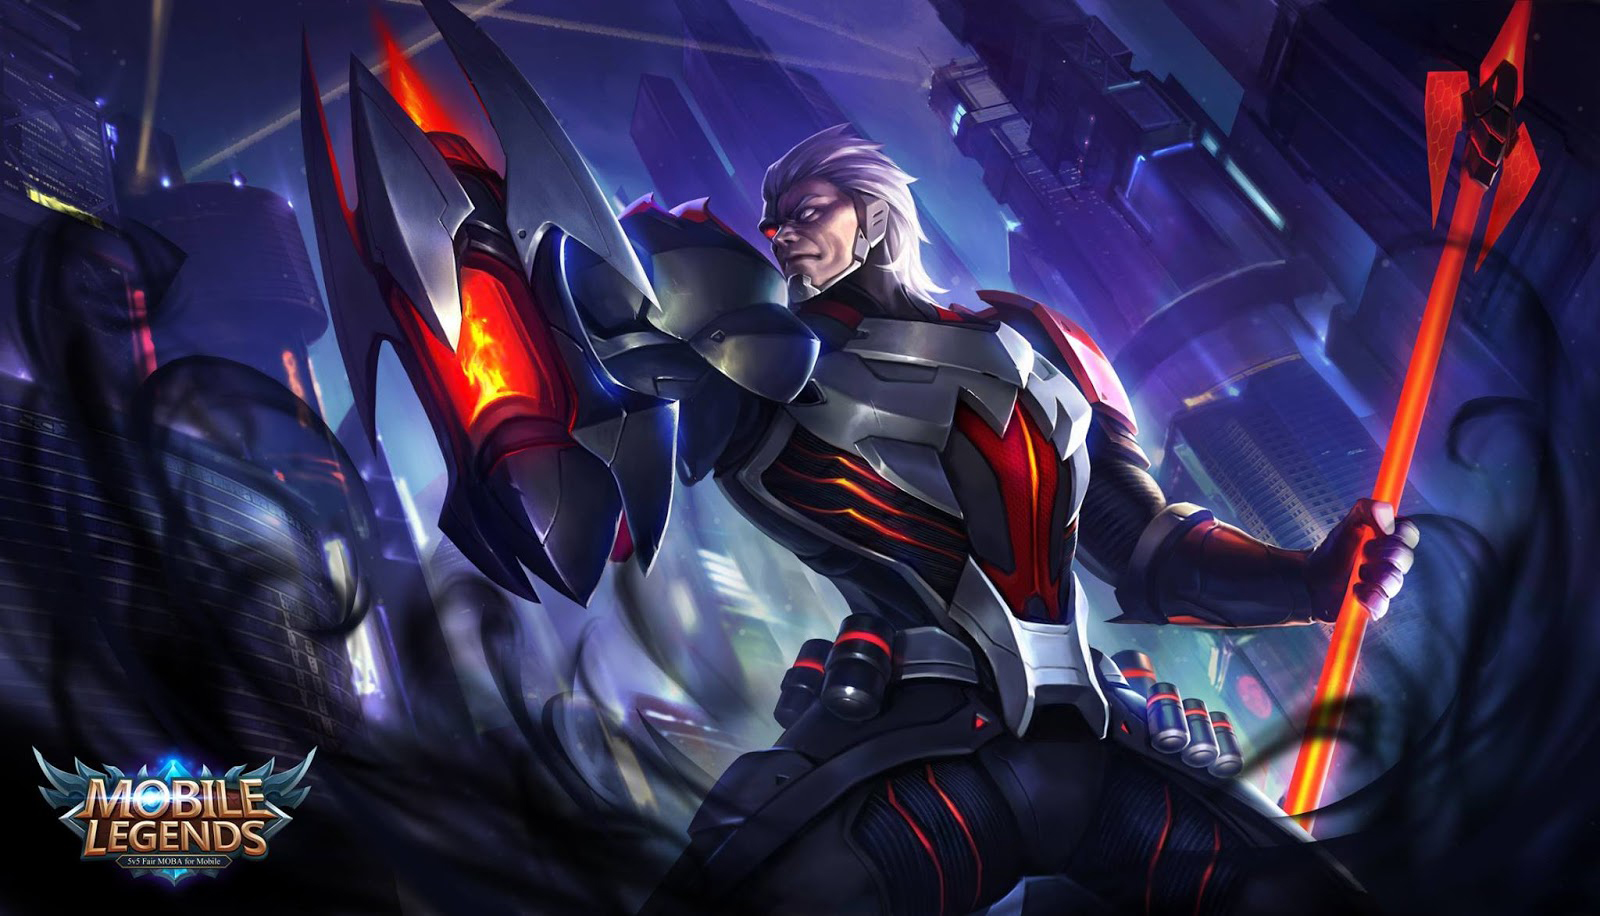 MOscov mobile legend 5v5 moba mobile legend 512 mb mobile legend 5v5 fair moba for mobile 5 mobile legends mobile legend 60fps mobile legend 60fps nox mobile legend 60fps xiaomi mobile legend 60fps support mobile legend 60 fps pc mobile legend 60fps gltools